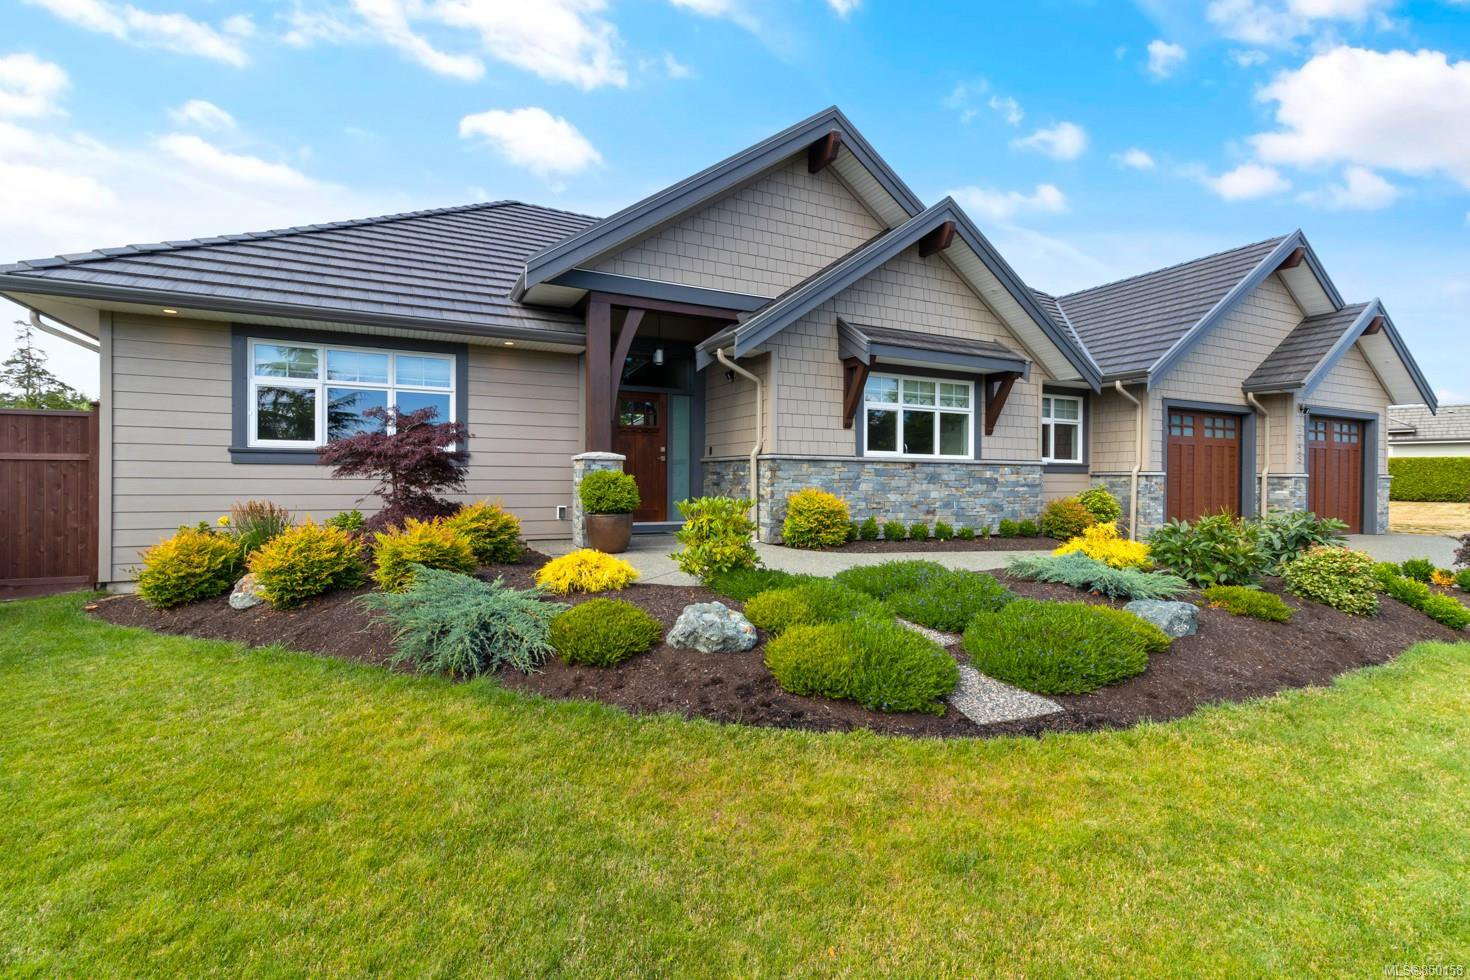 Photo 3: Photos: 3228 Majestic Dr in : CV Crown Isle House for sale (Comox Valley)  : MLS®# 850158